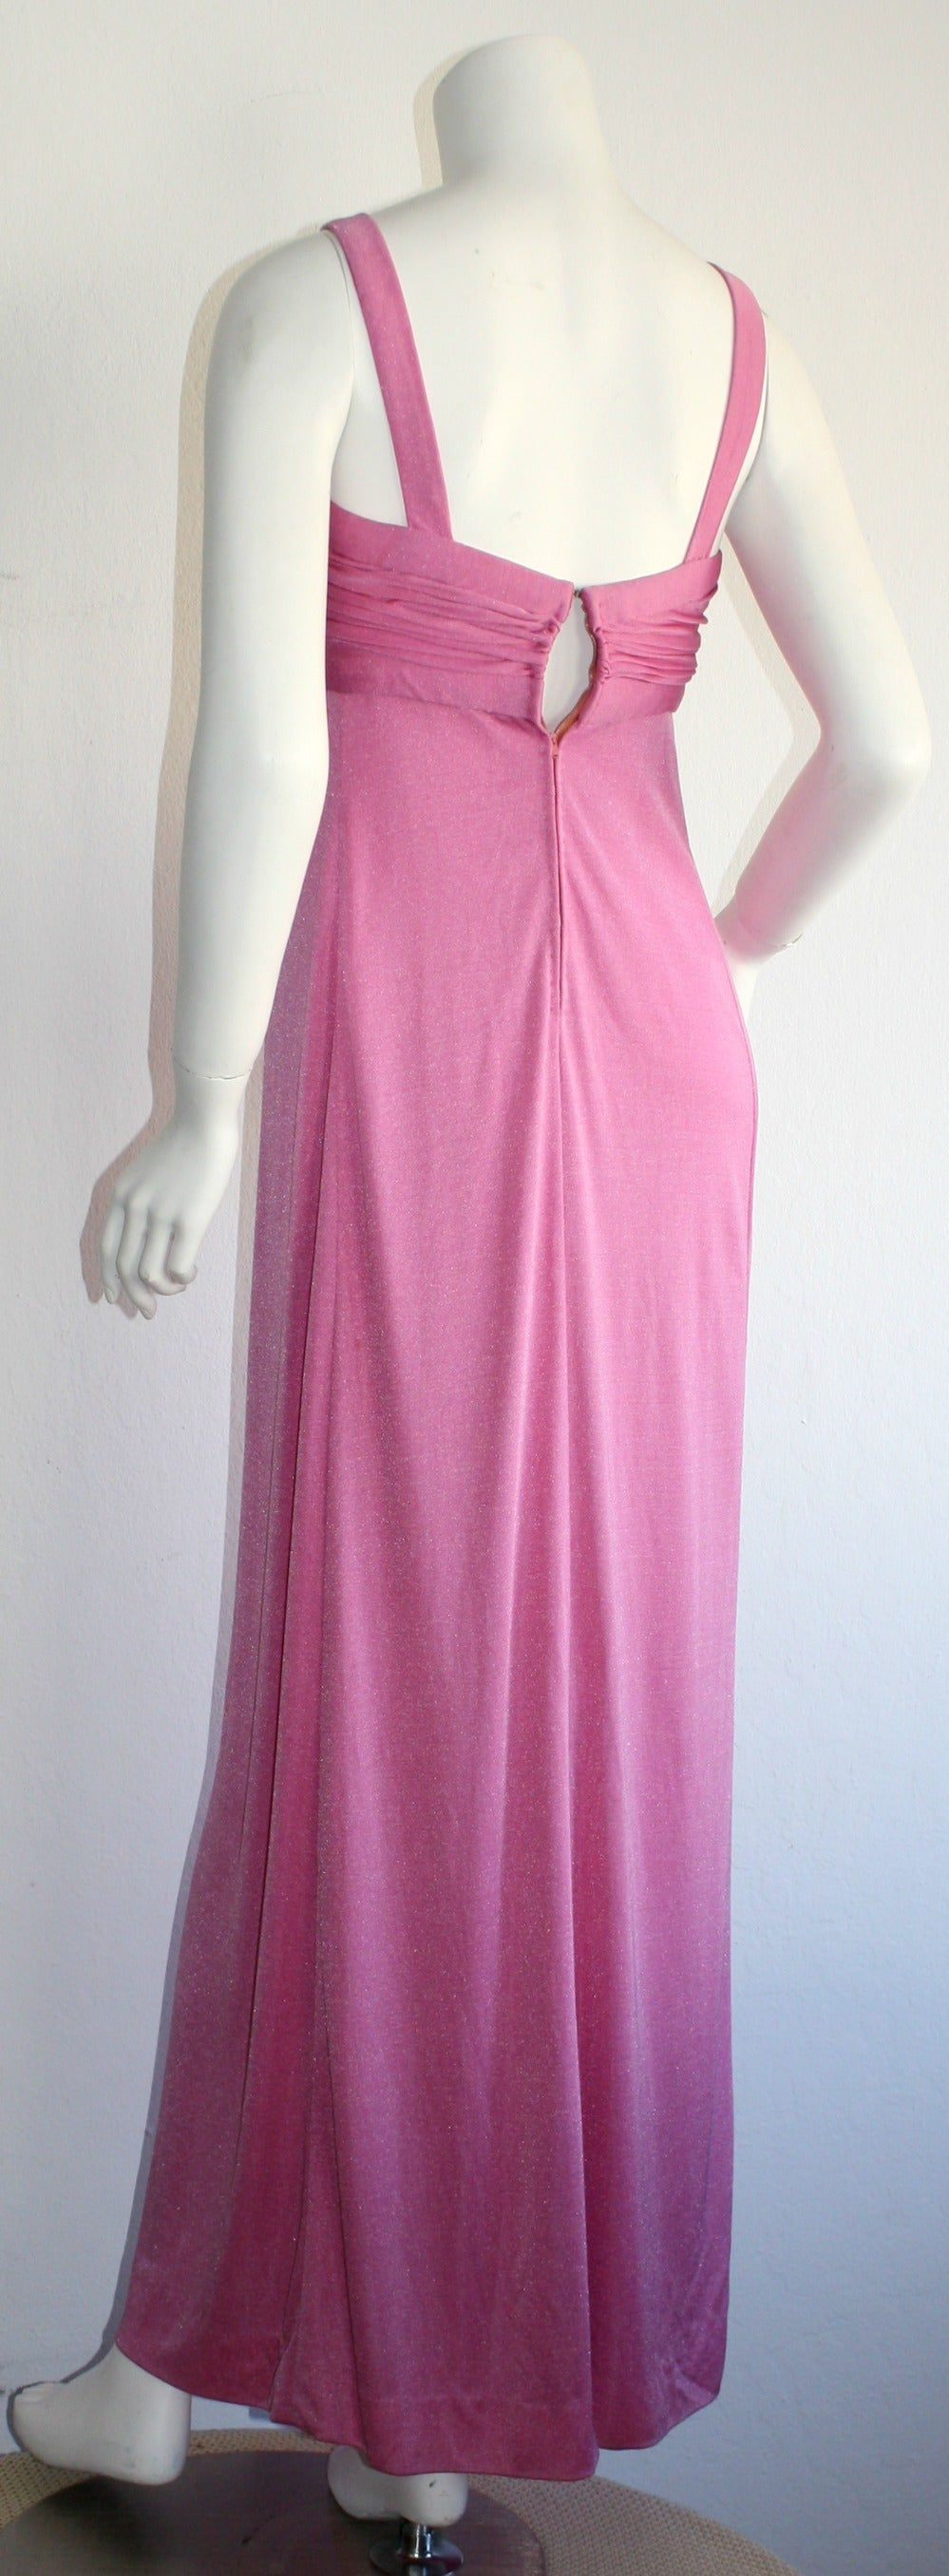 Loris Azzaro 1970s Silk Jersey Vintage Pink Empire Dress Gown For Sale 1